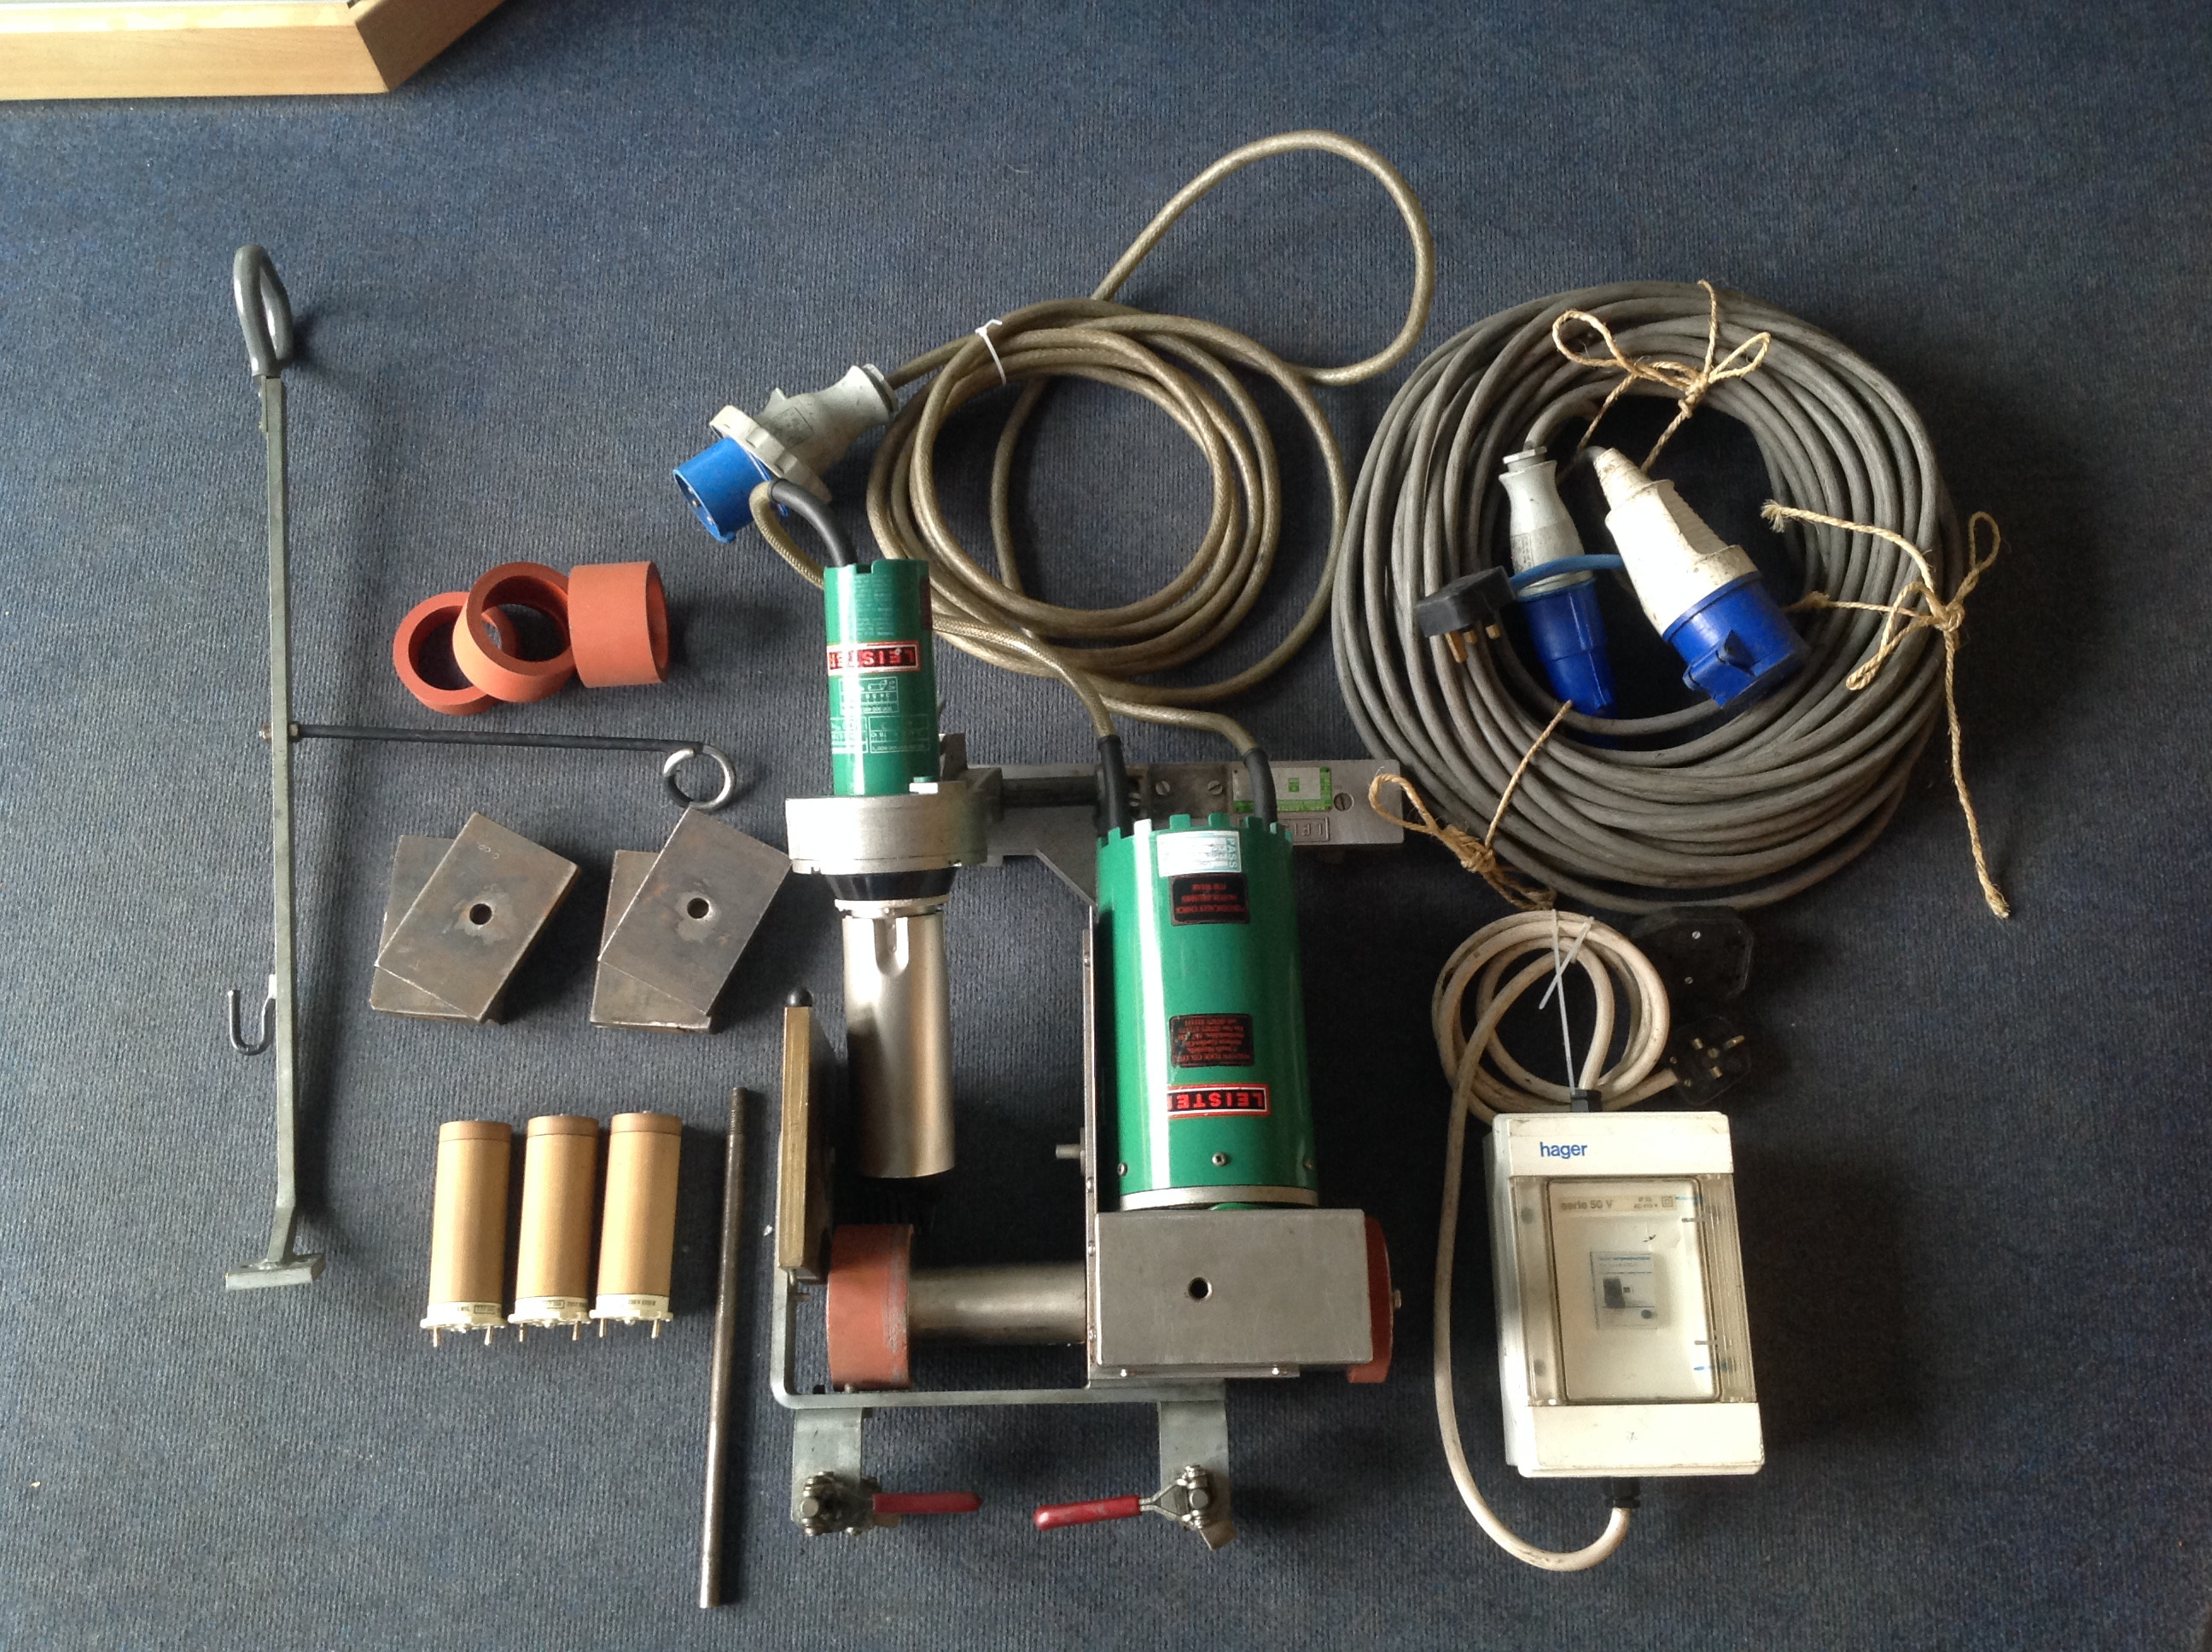 Leister Variant S Overlap Welding Machine KIT 45mm 230V with Lots of Accessories  (USED188) SOLD